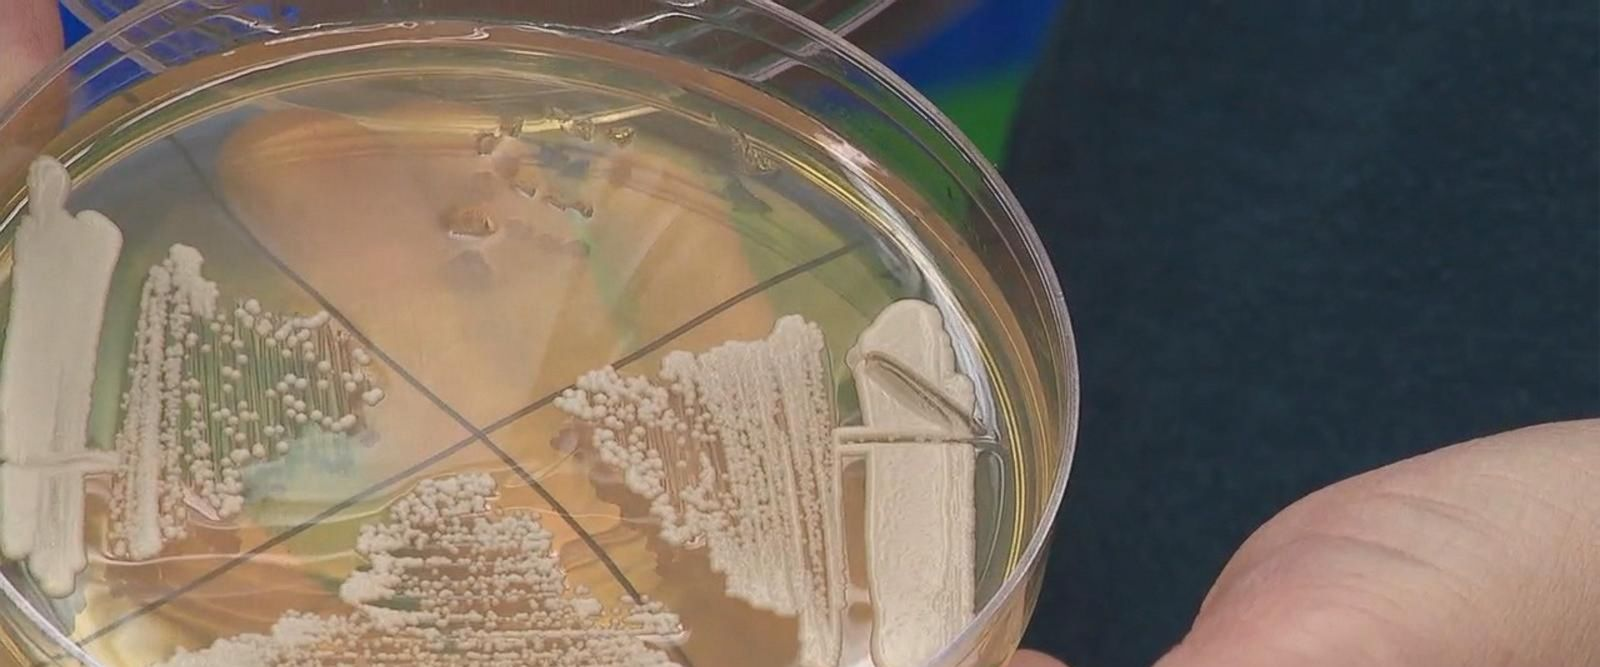 VIDEO: New deadly superbug threat in the US